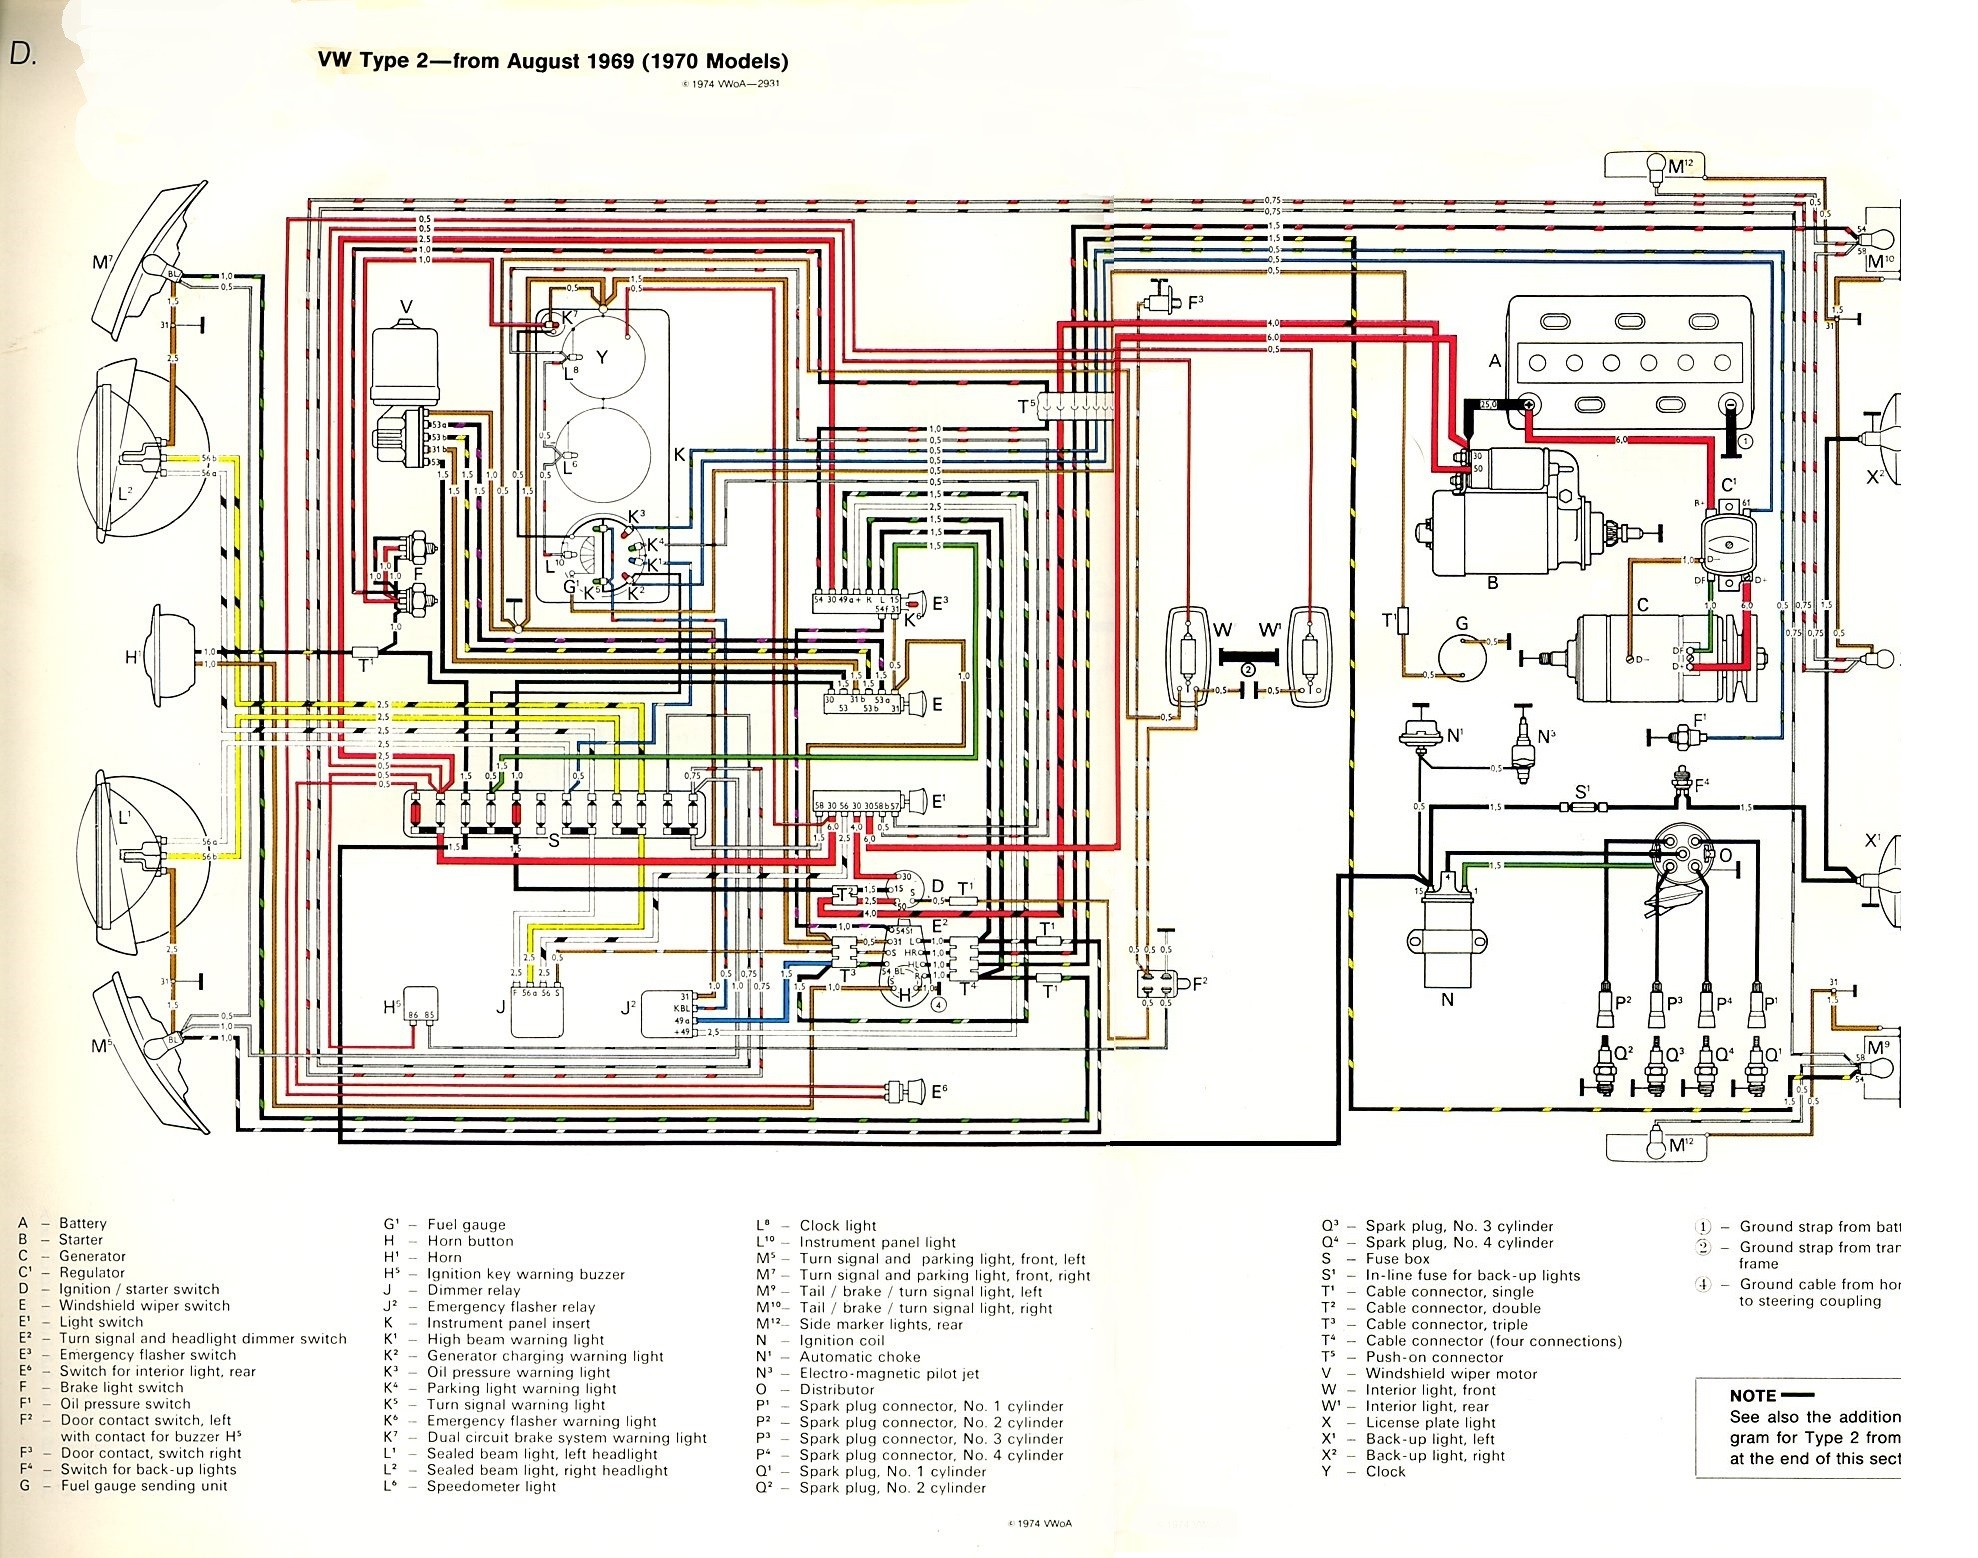 Best Of 1979 Vw Beetle Fuel Injection Wiring Diagram